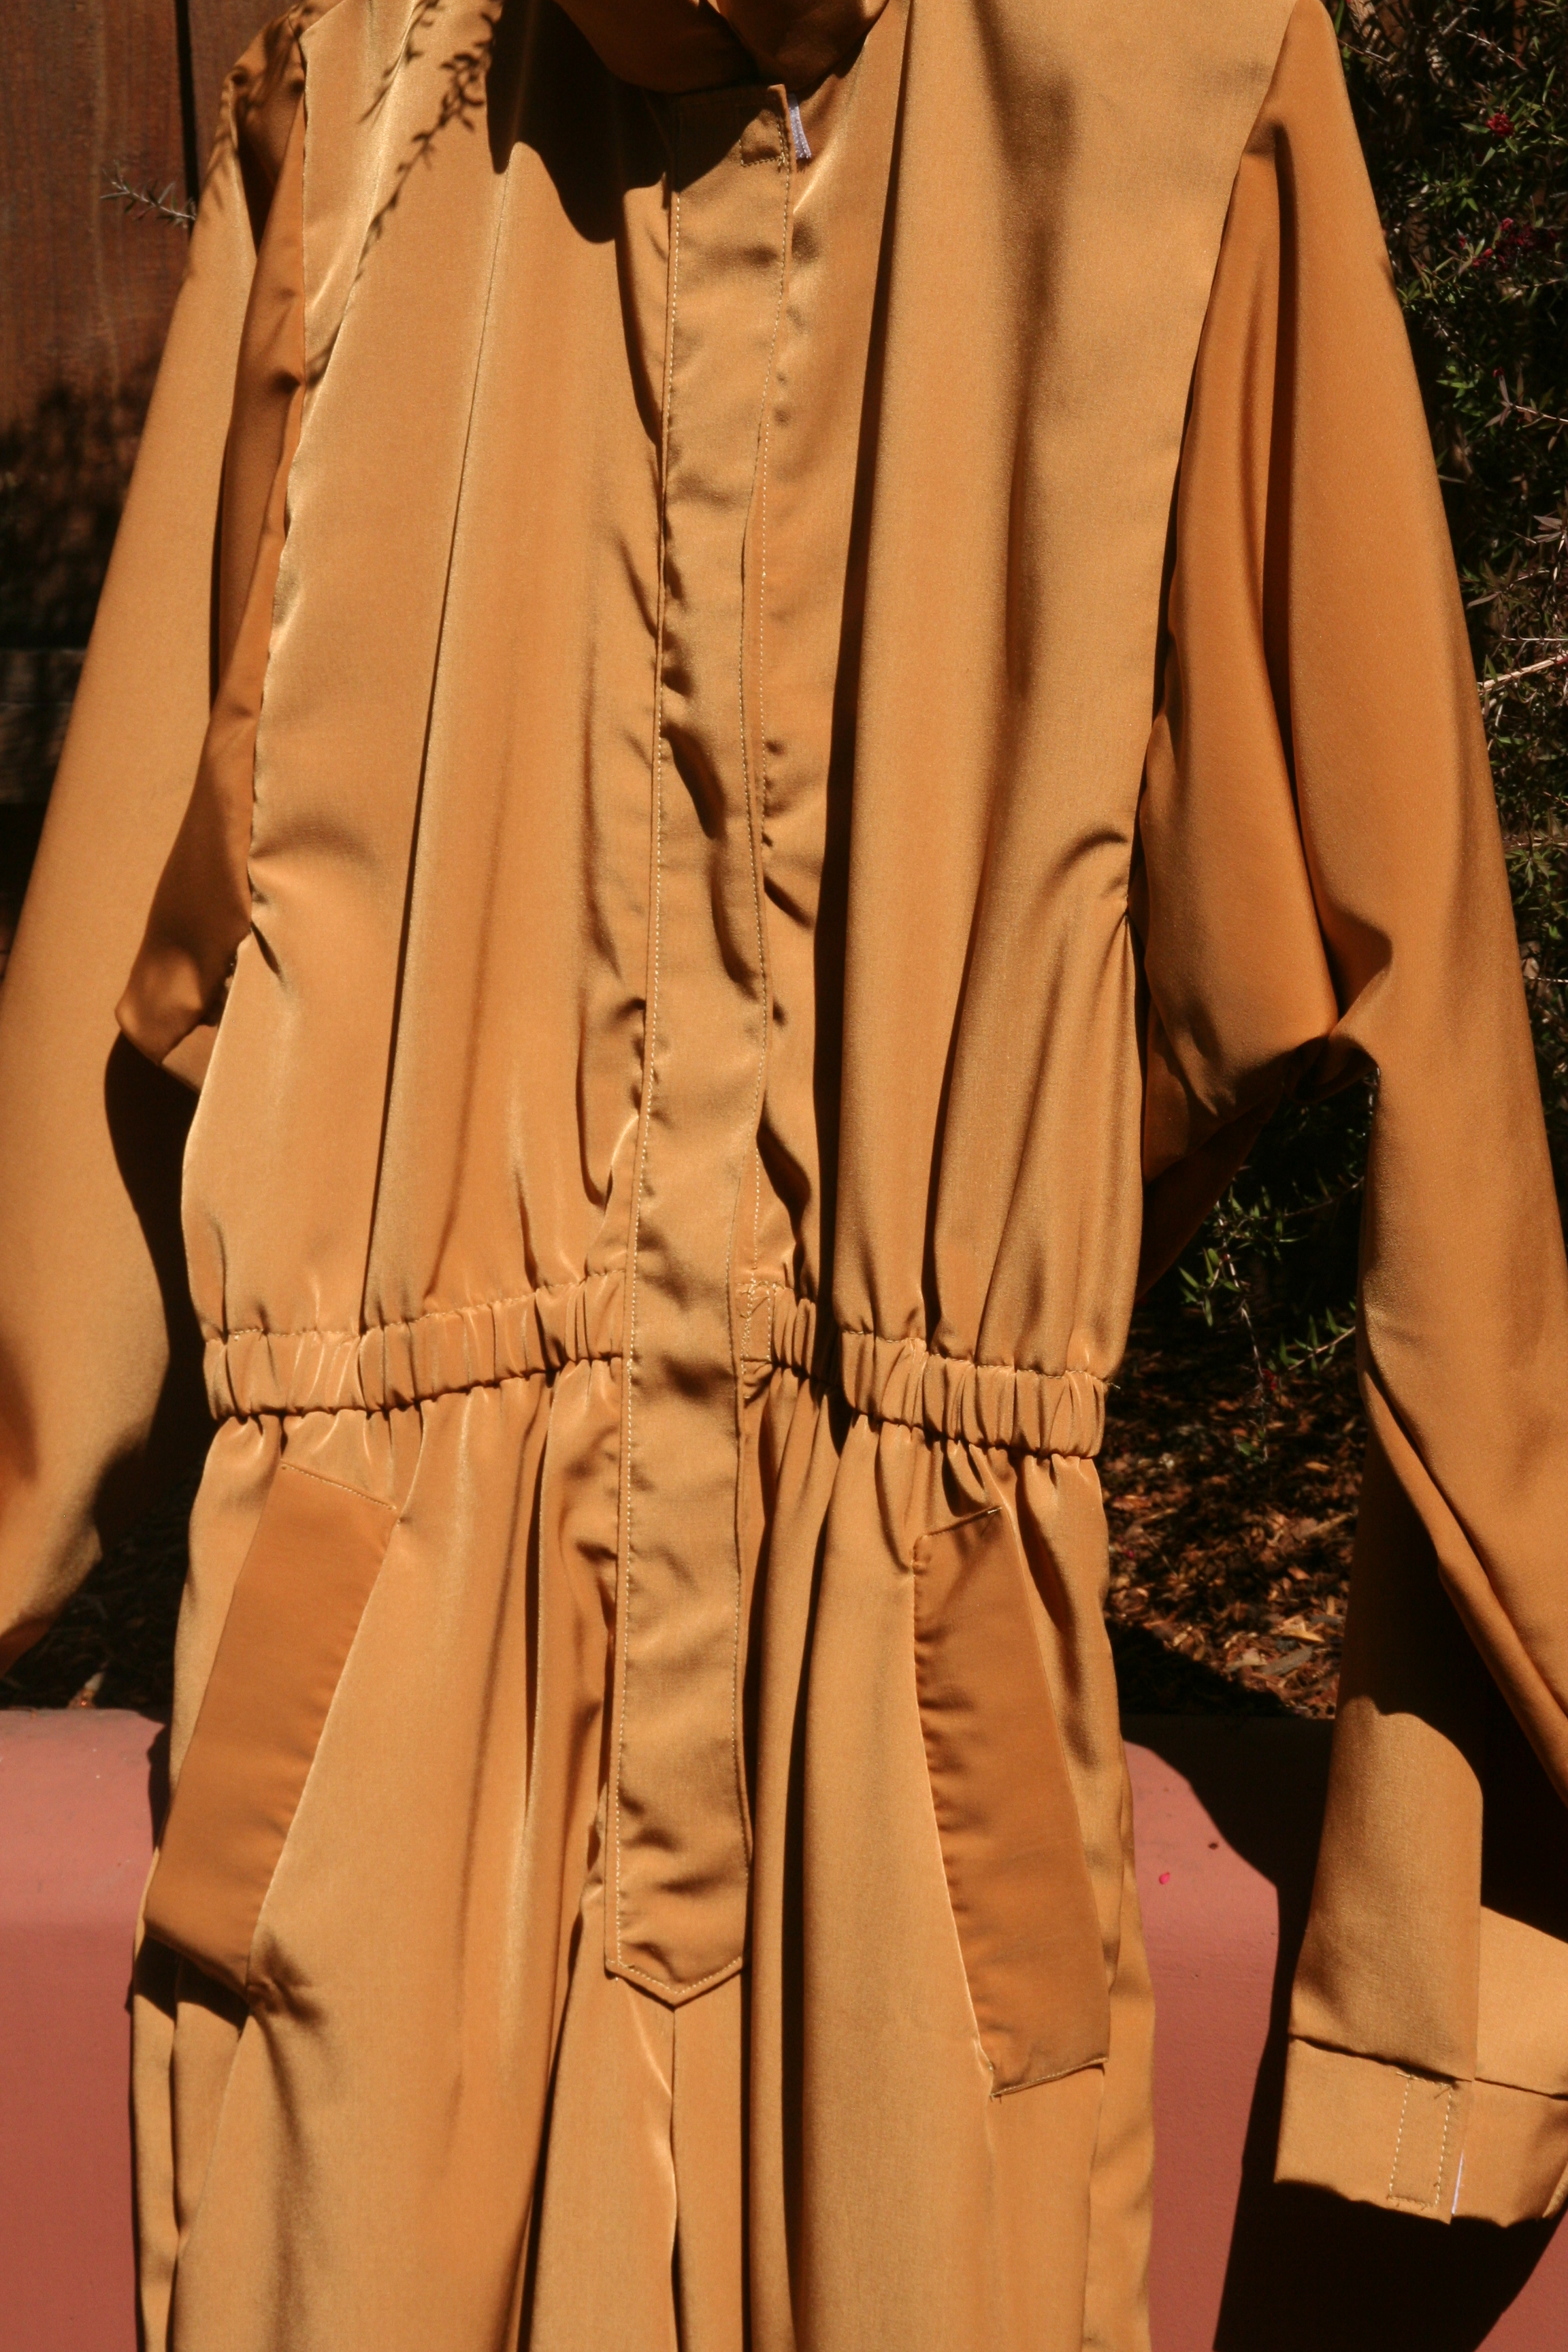 jumpsuit_detail.JPG